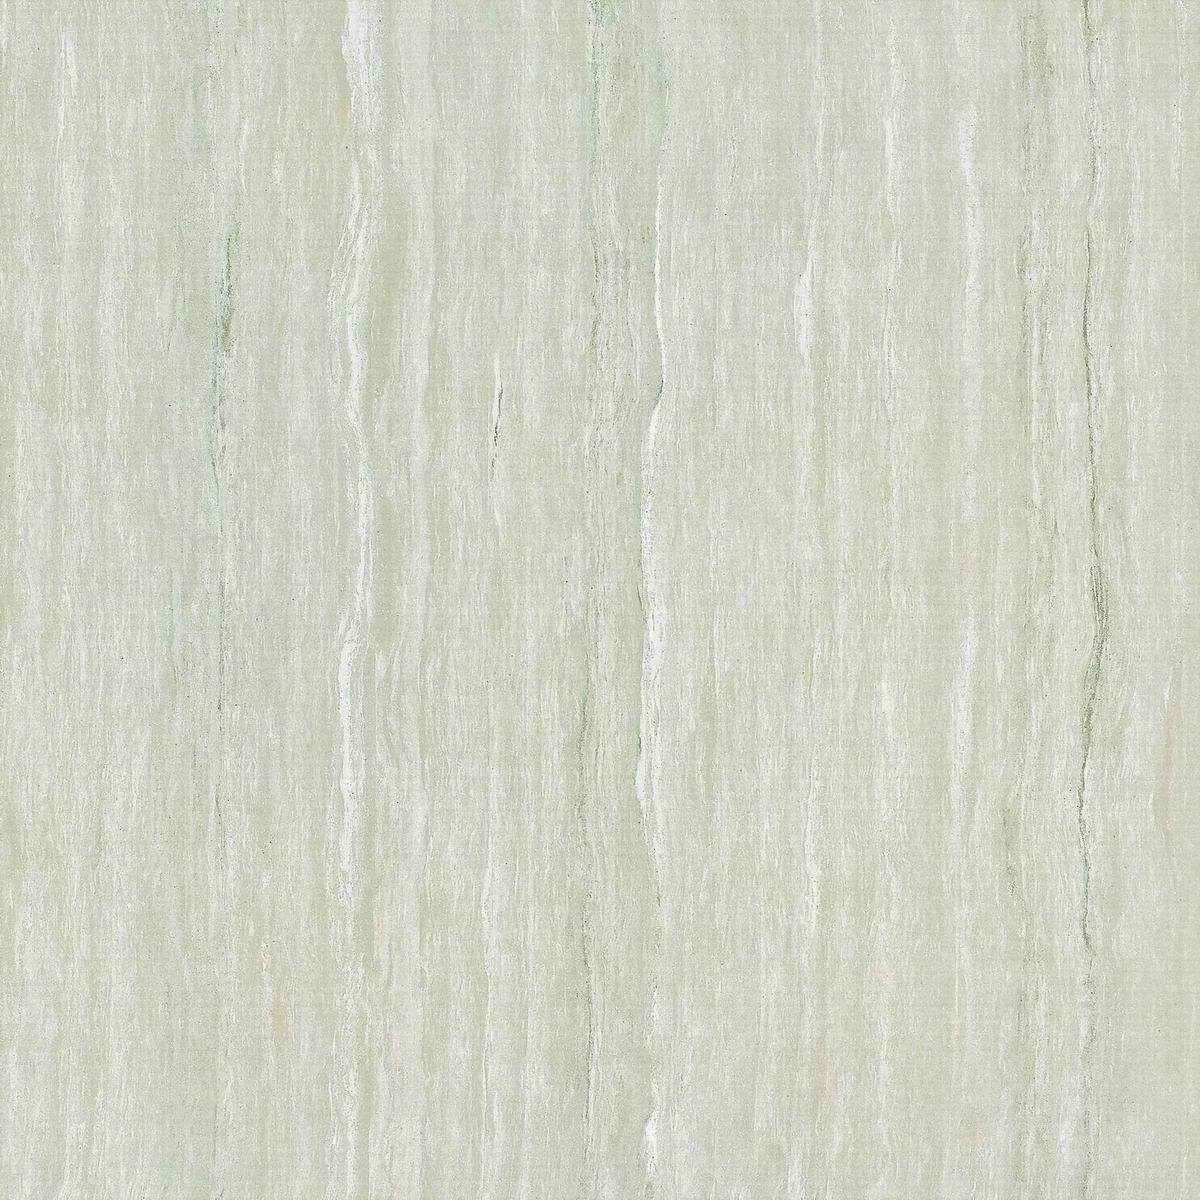 Polished porcelain floor tile super white polished porcelain floor china polished porcelain floor tile 600x600 line stone hi61104 china porc dailygadgetfo Choice Image